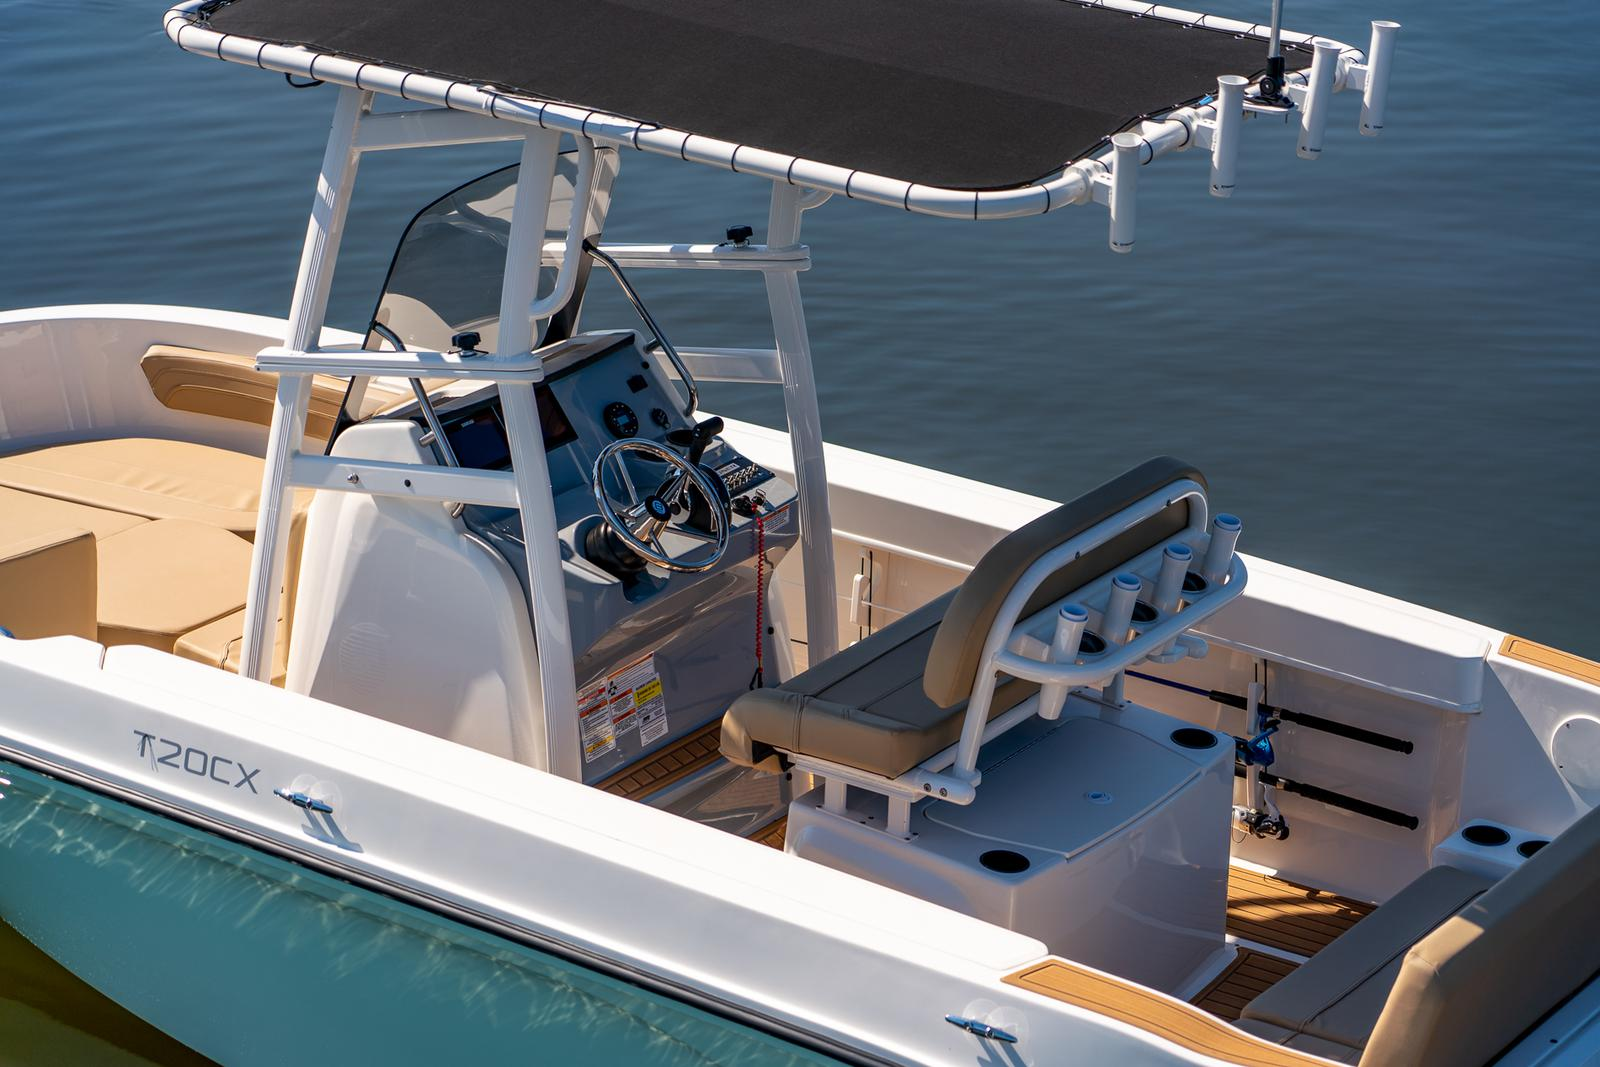 2021 Bayliner boat for sale, model of the boat is T20CC & Image # 3 of 7